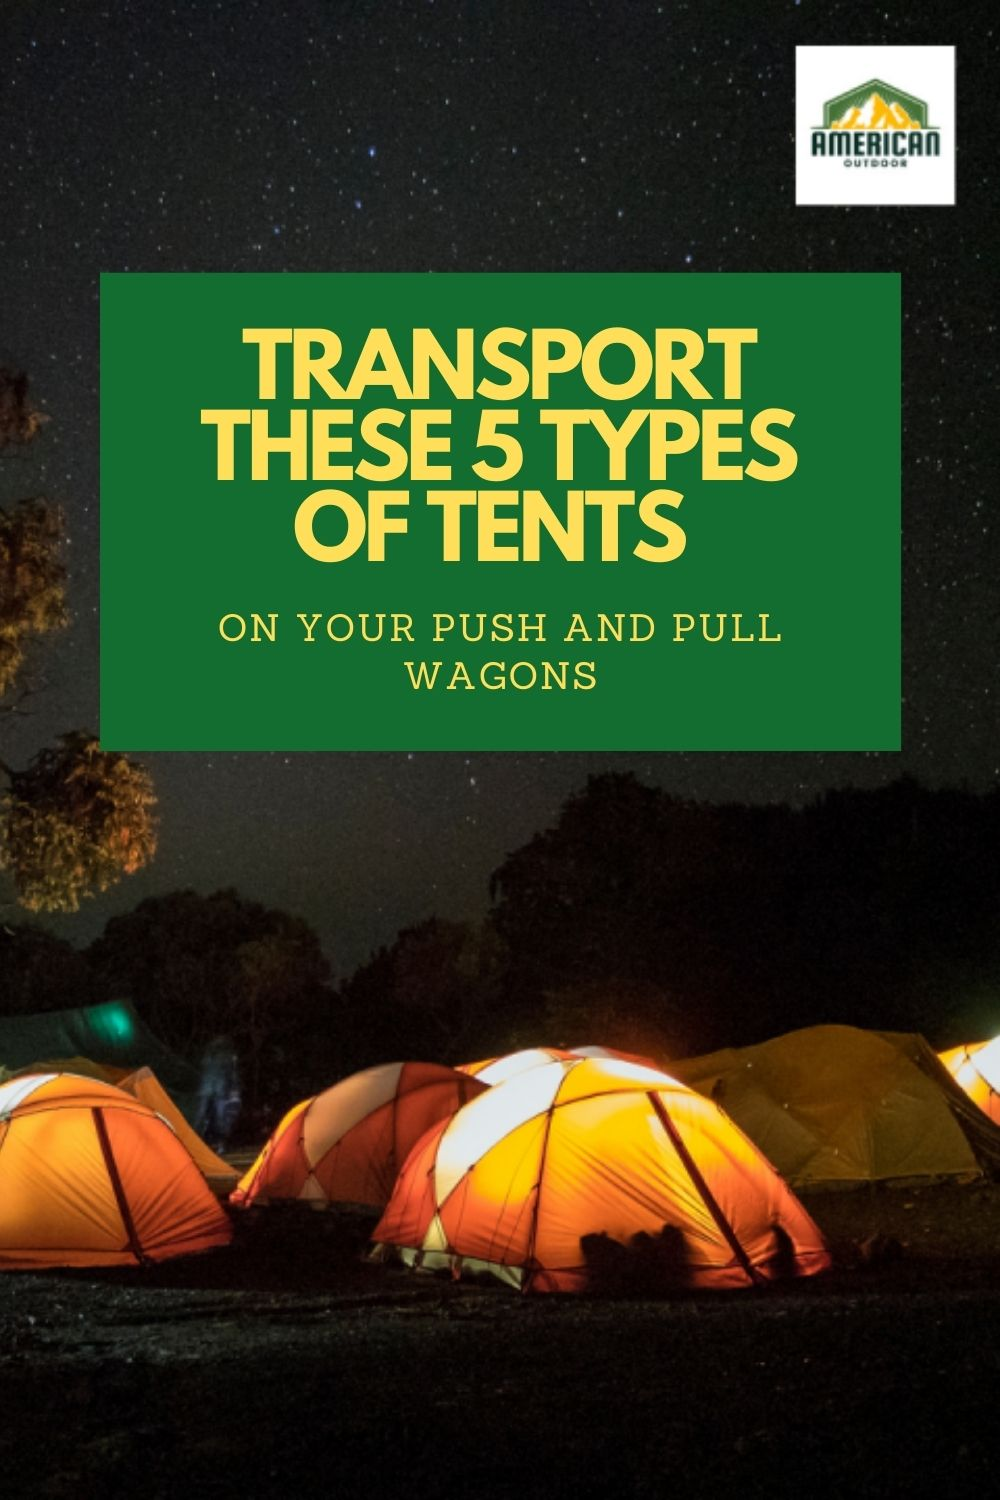 A Guide To Figure Out What 5 Types of Tents To Transport With Push and Pull Wagons